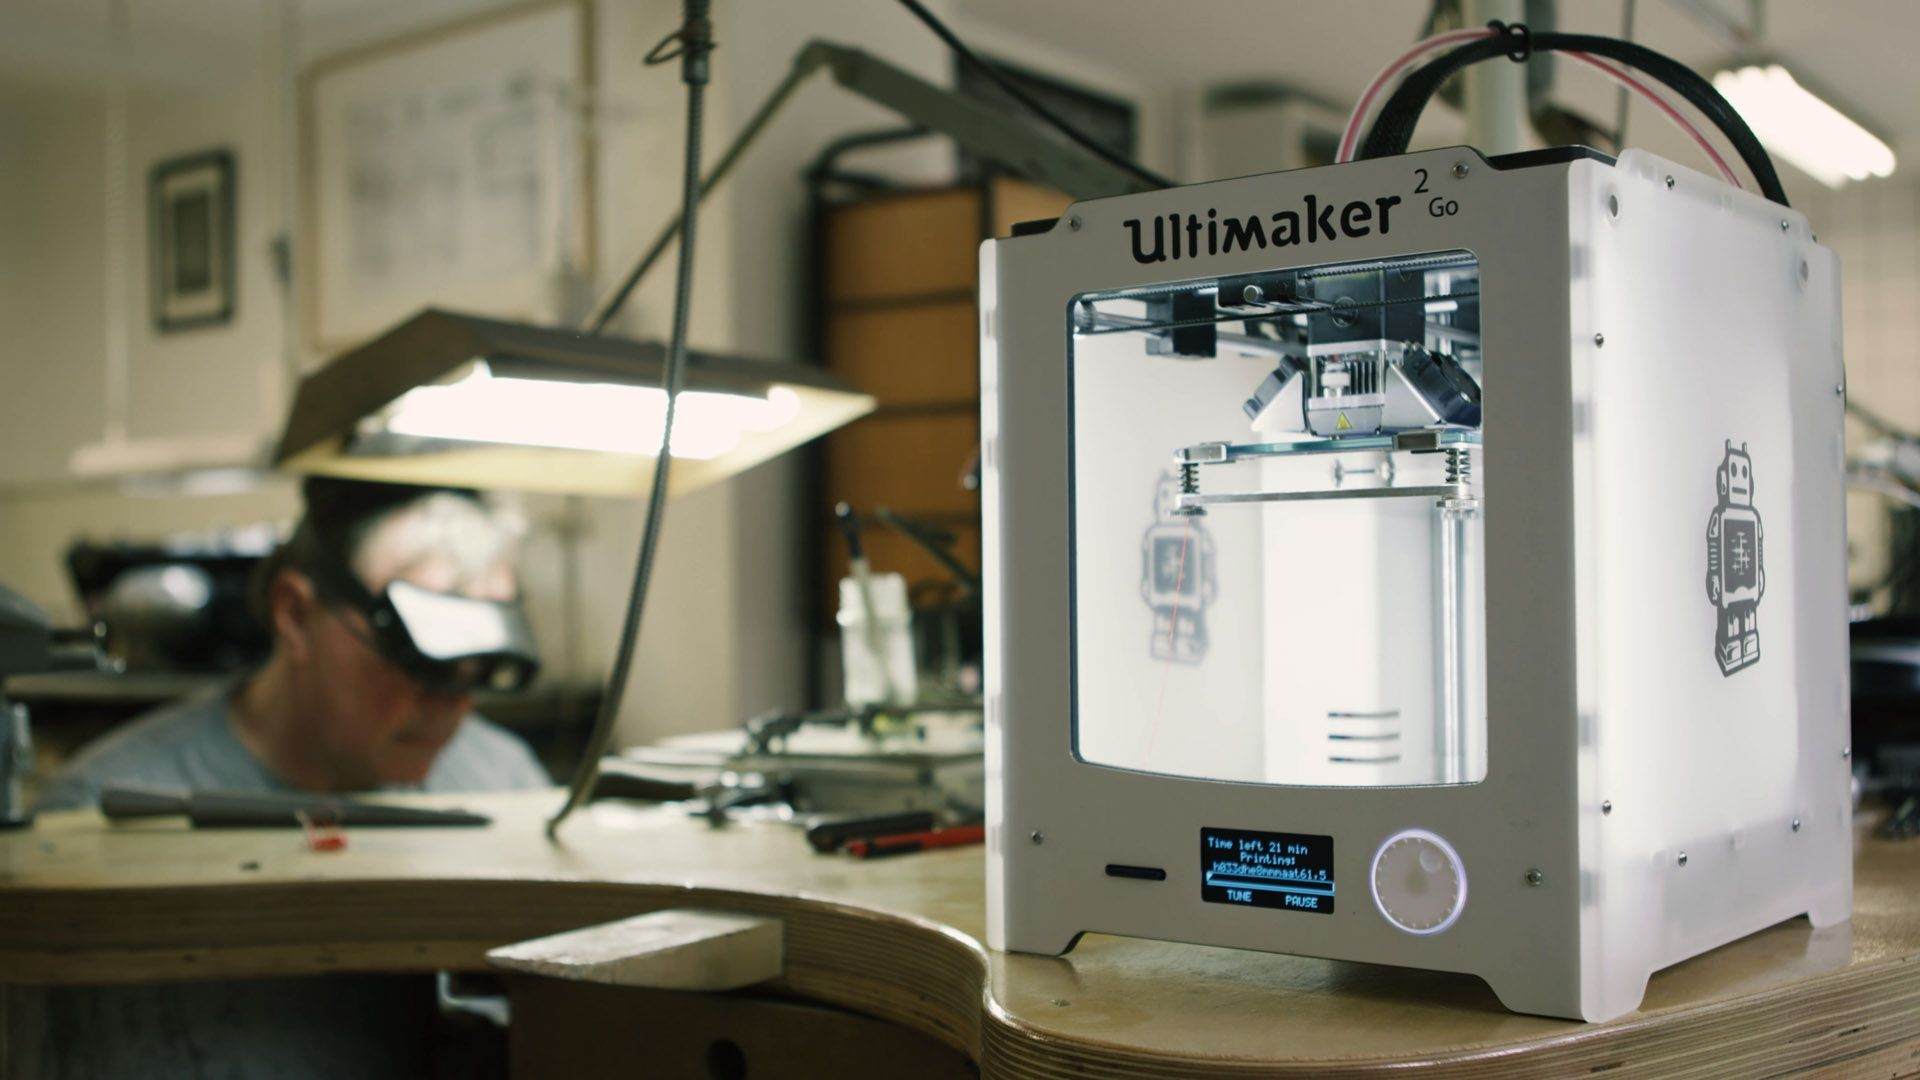 Jewelers use Ultimaker to prototype custom rings